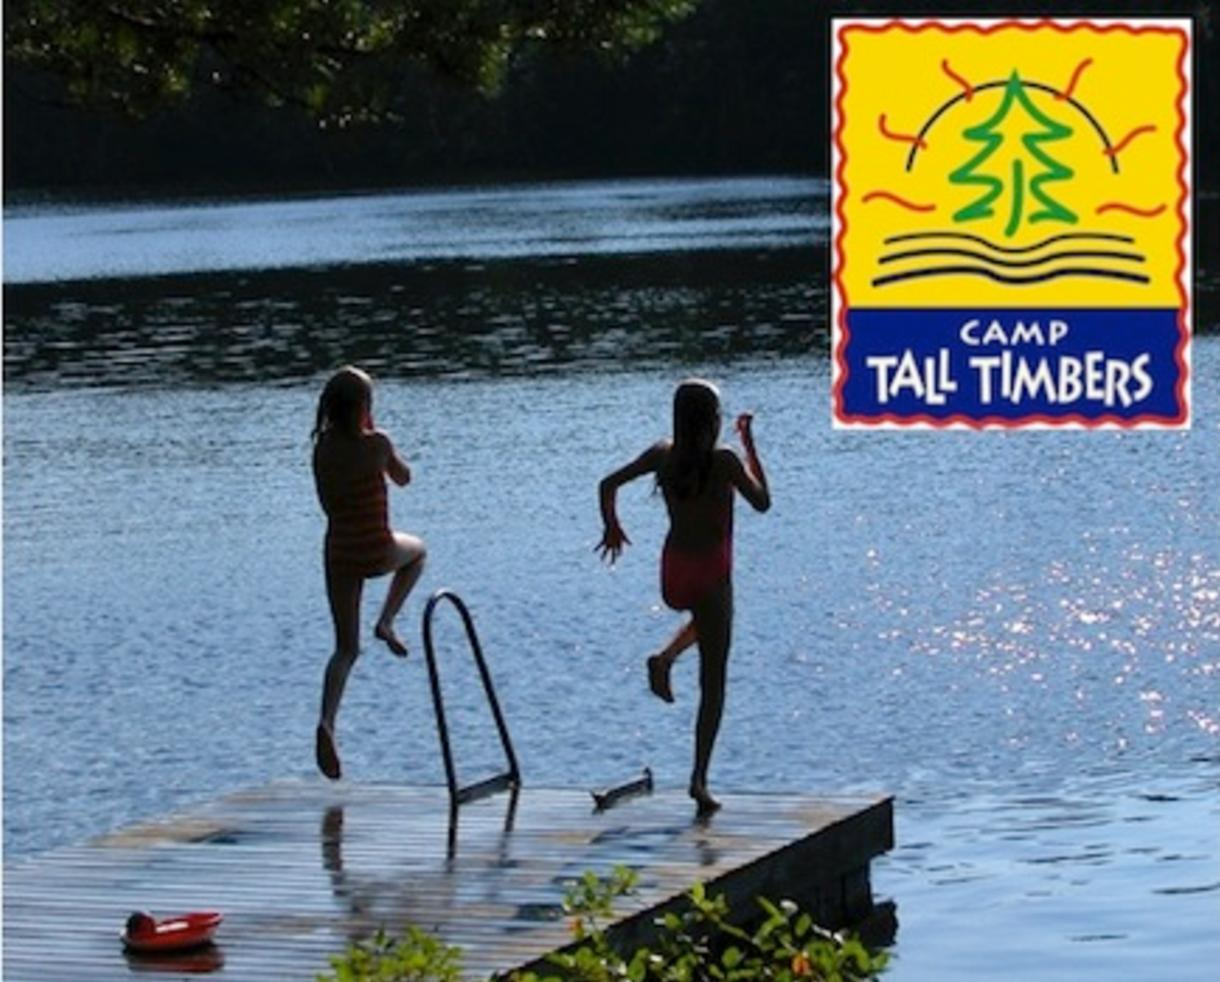 $75 for One Child's Try-Out Weekend at Camp Tall Timbers ($150 value - 50% Off)